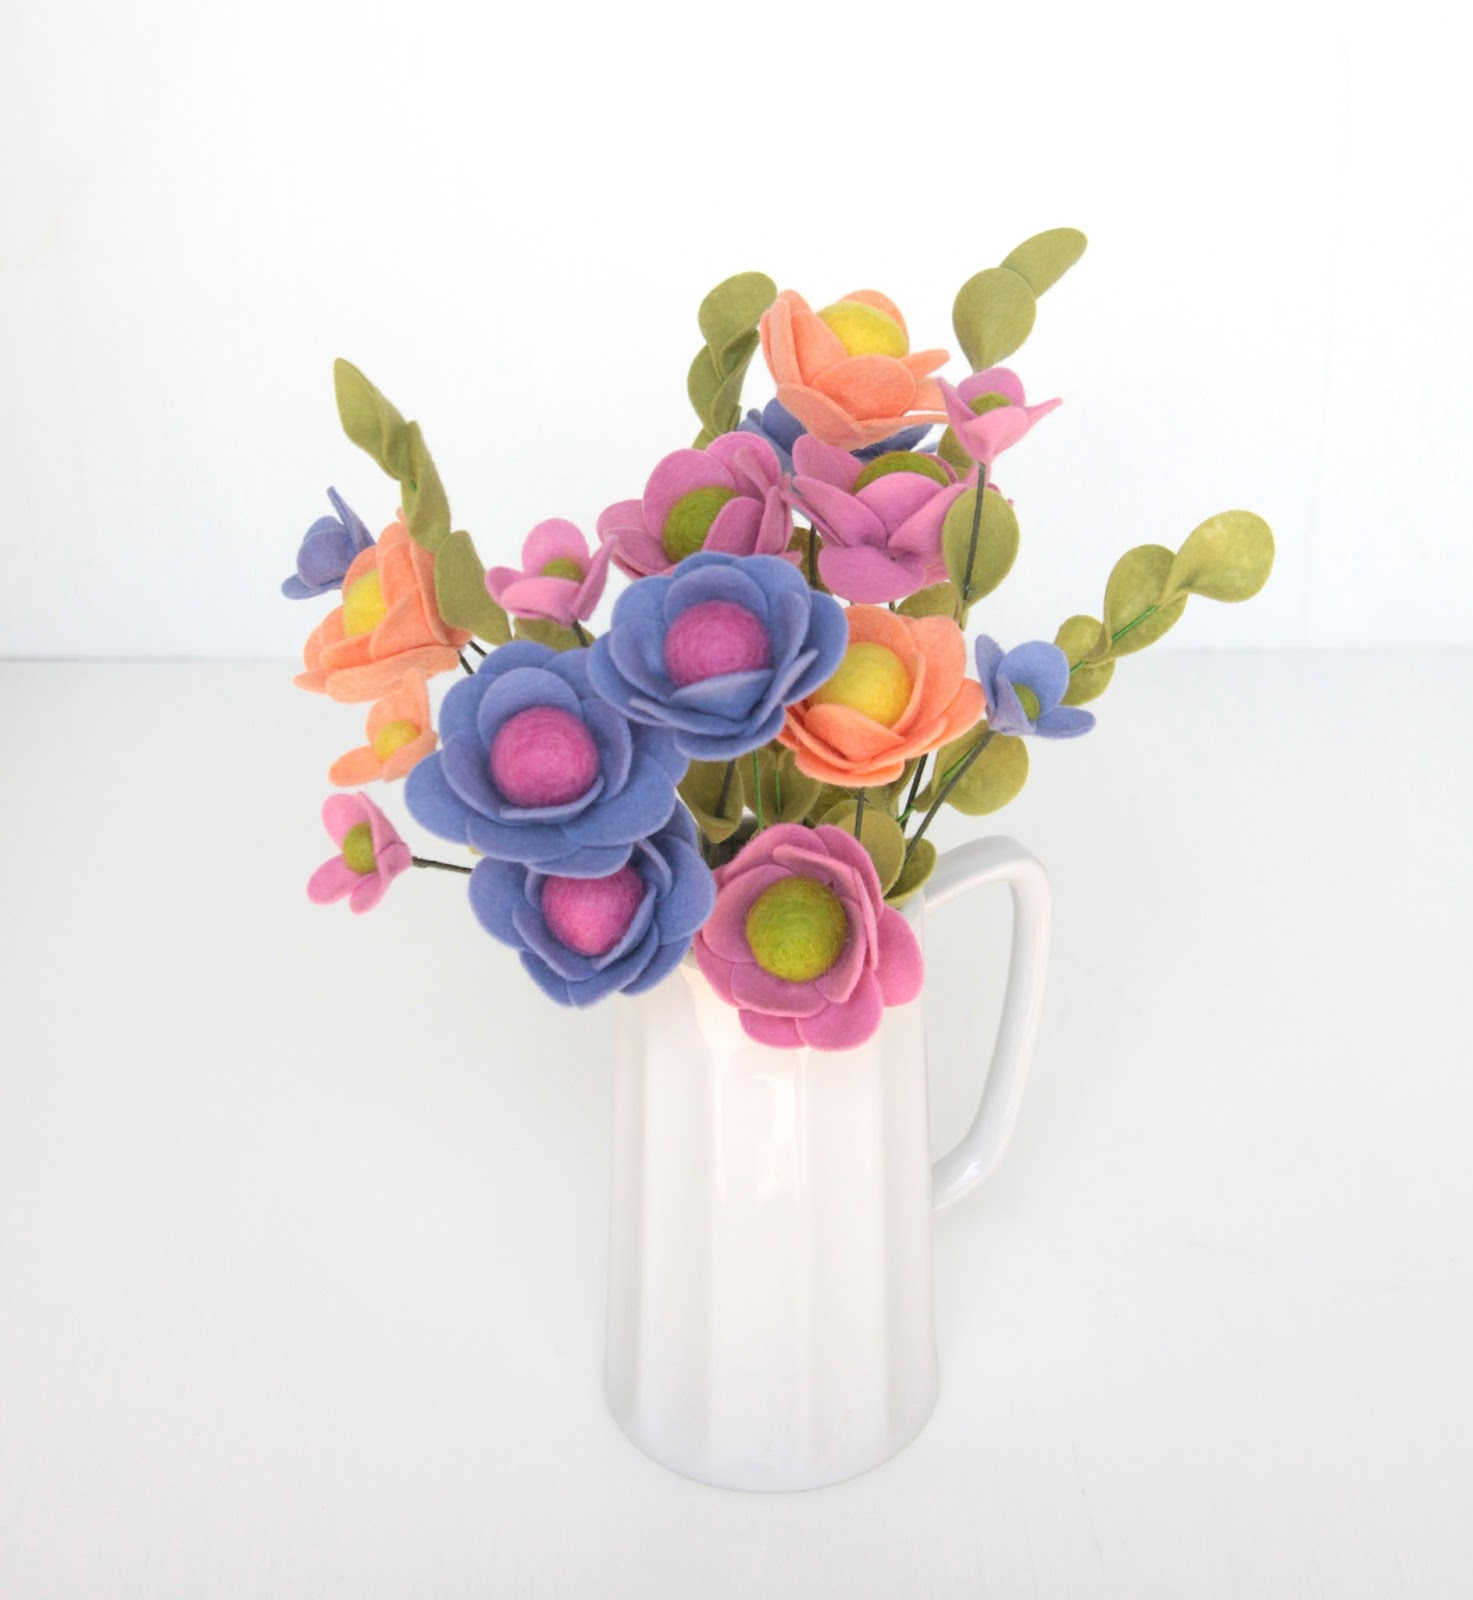 DIY Felt flower bouquet